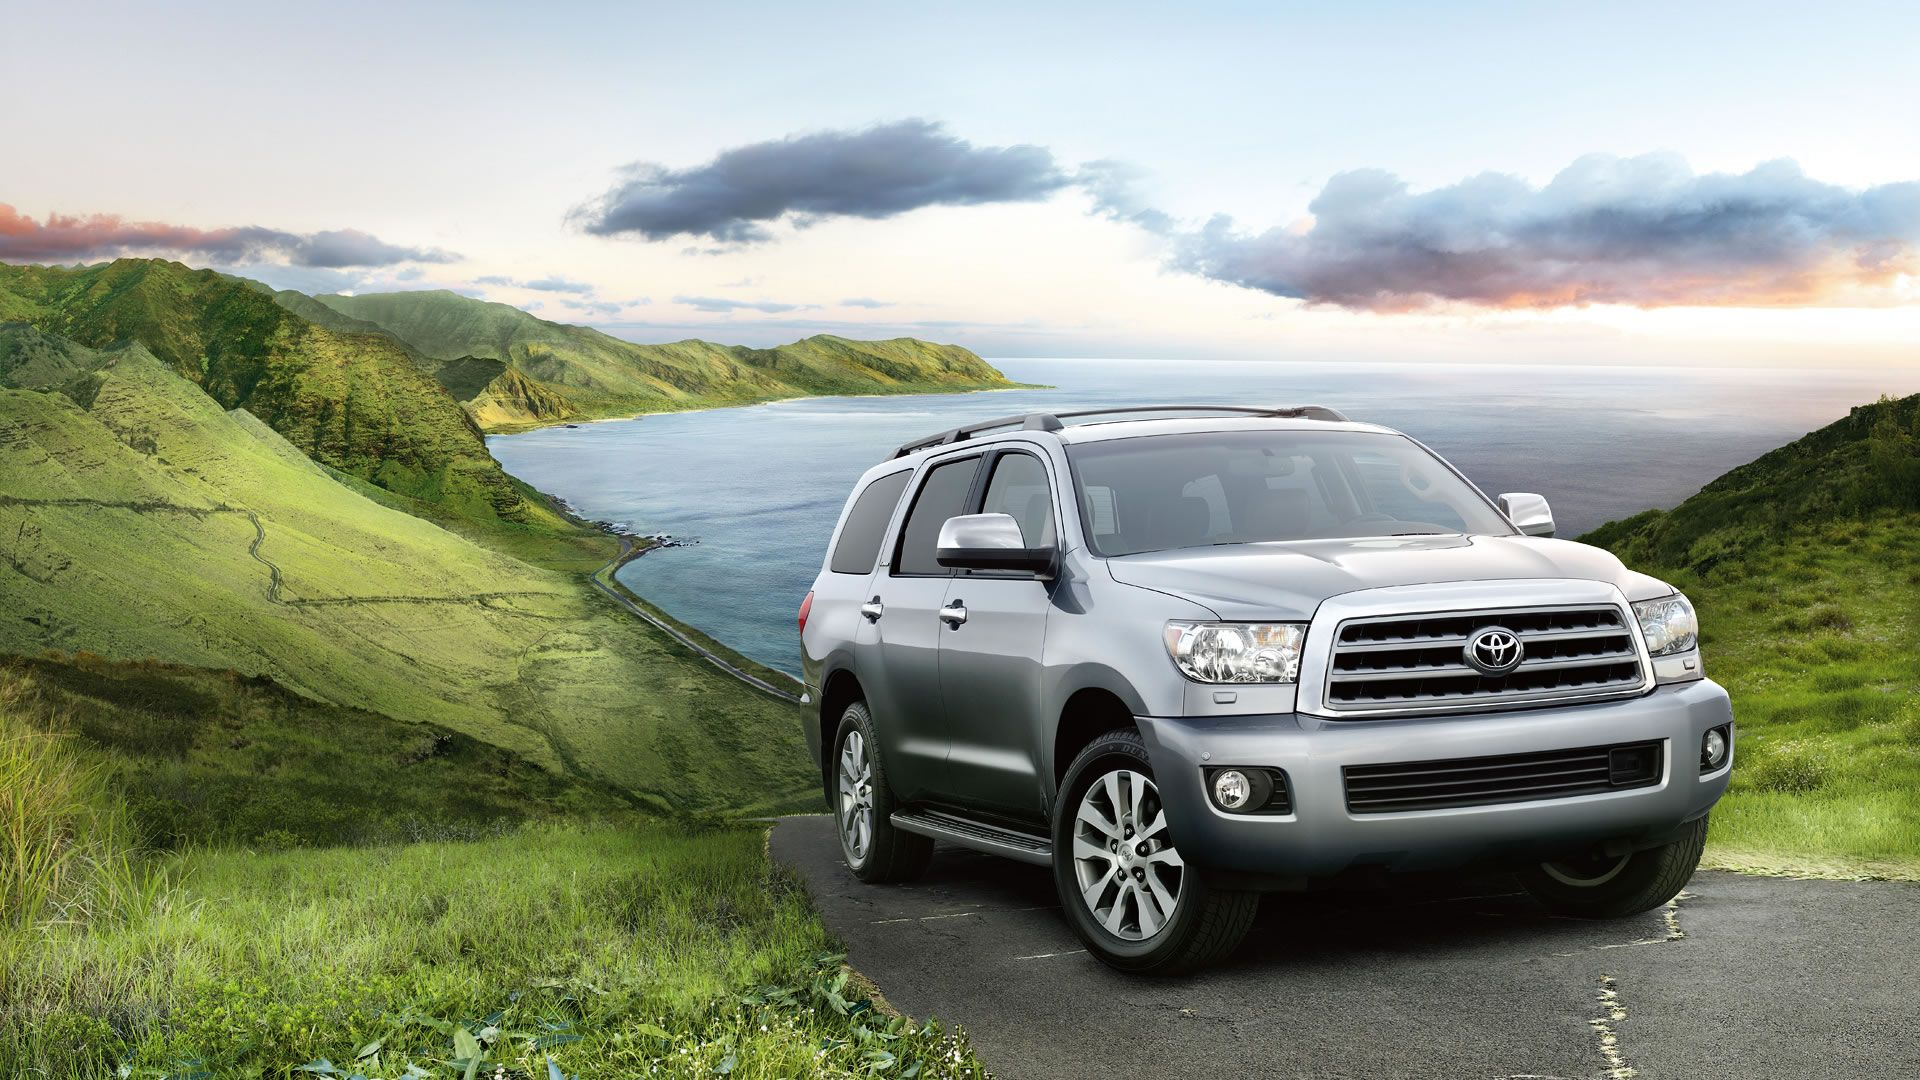 28 best 2014 sequoia images on pinterest photo galleries toyota and toyota suvs